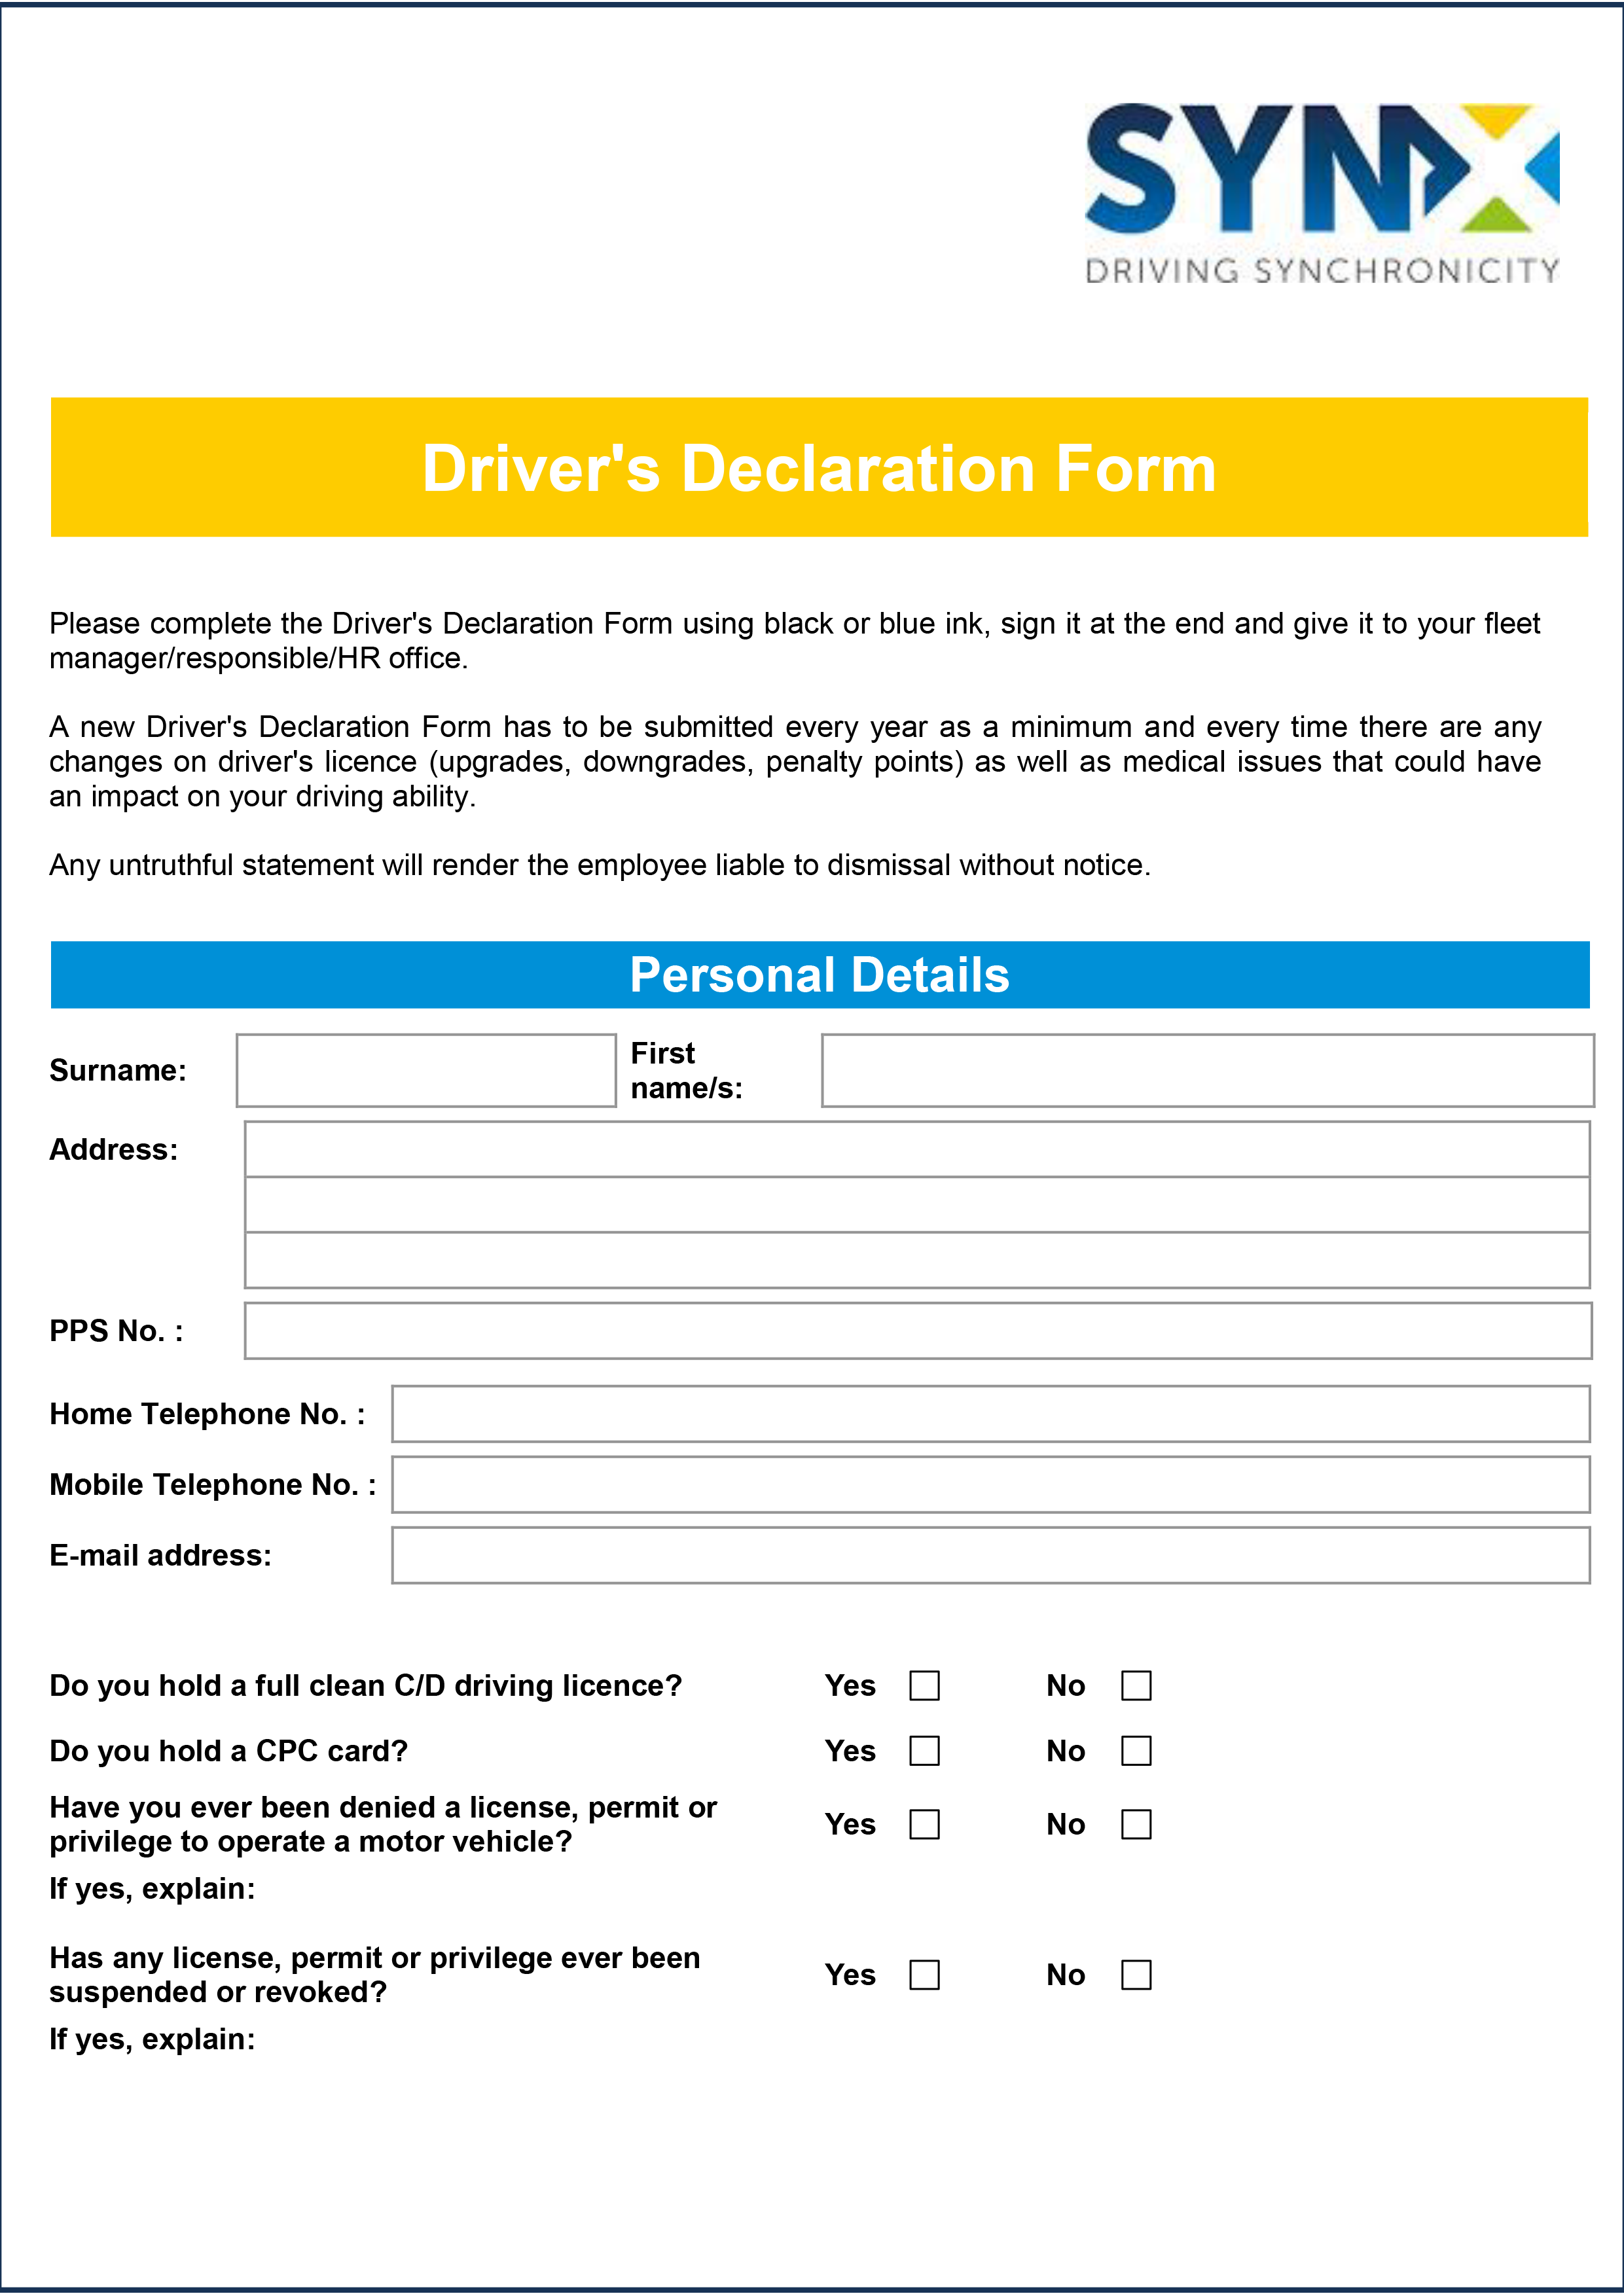 Drivers_declaration_form-1.png